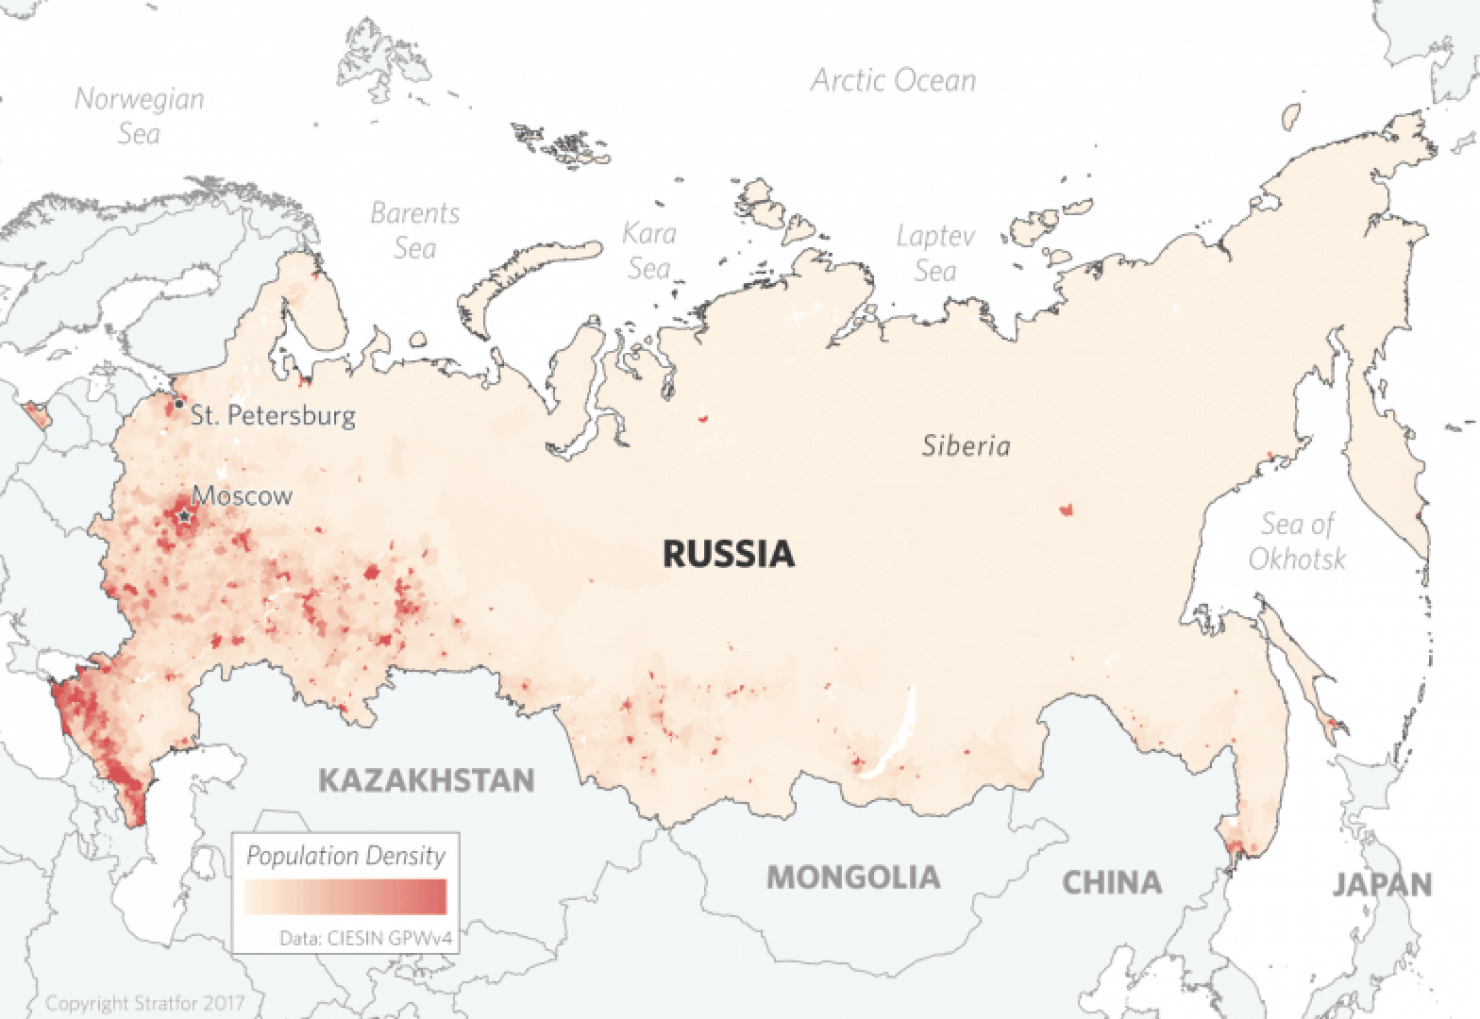 Russia - density (2017) • Map • PotionData.net on nasa russia, oceans and seas that surround russia, bulgaria russia, sakhalin island russia, sea that borders northwestern russia, toxic waste dumps sochi russia, exxonmobil russia, it and the oceans that border russia, kfc russia,